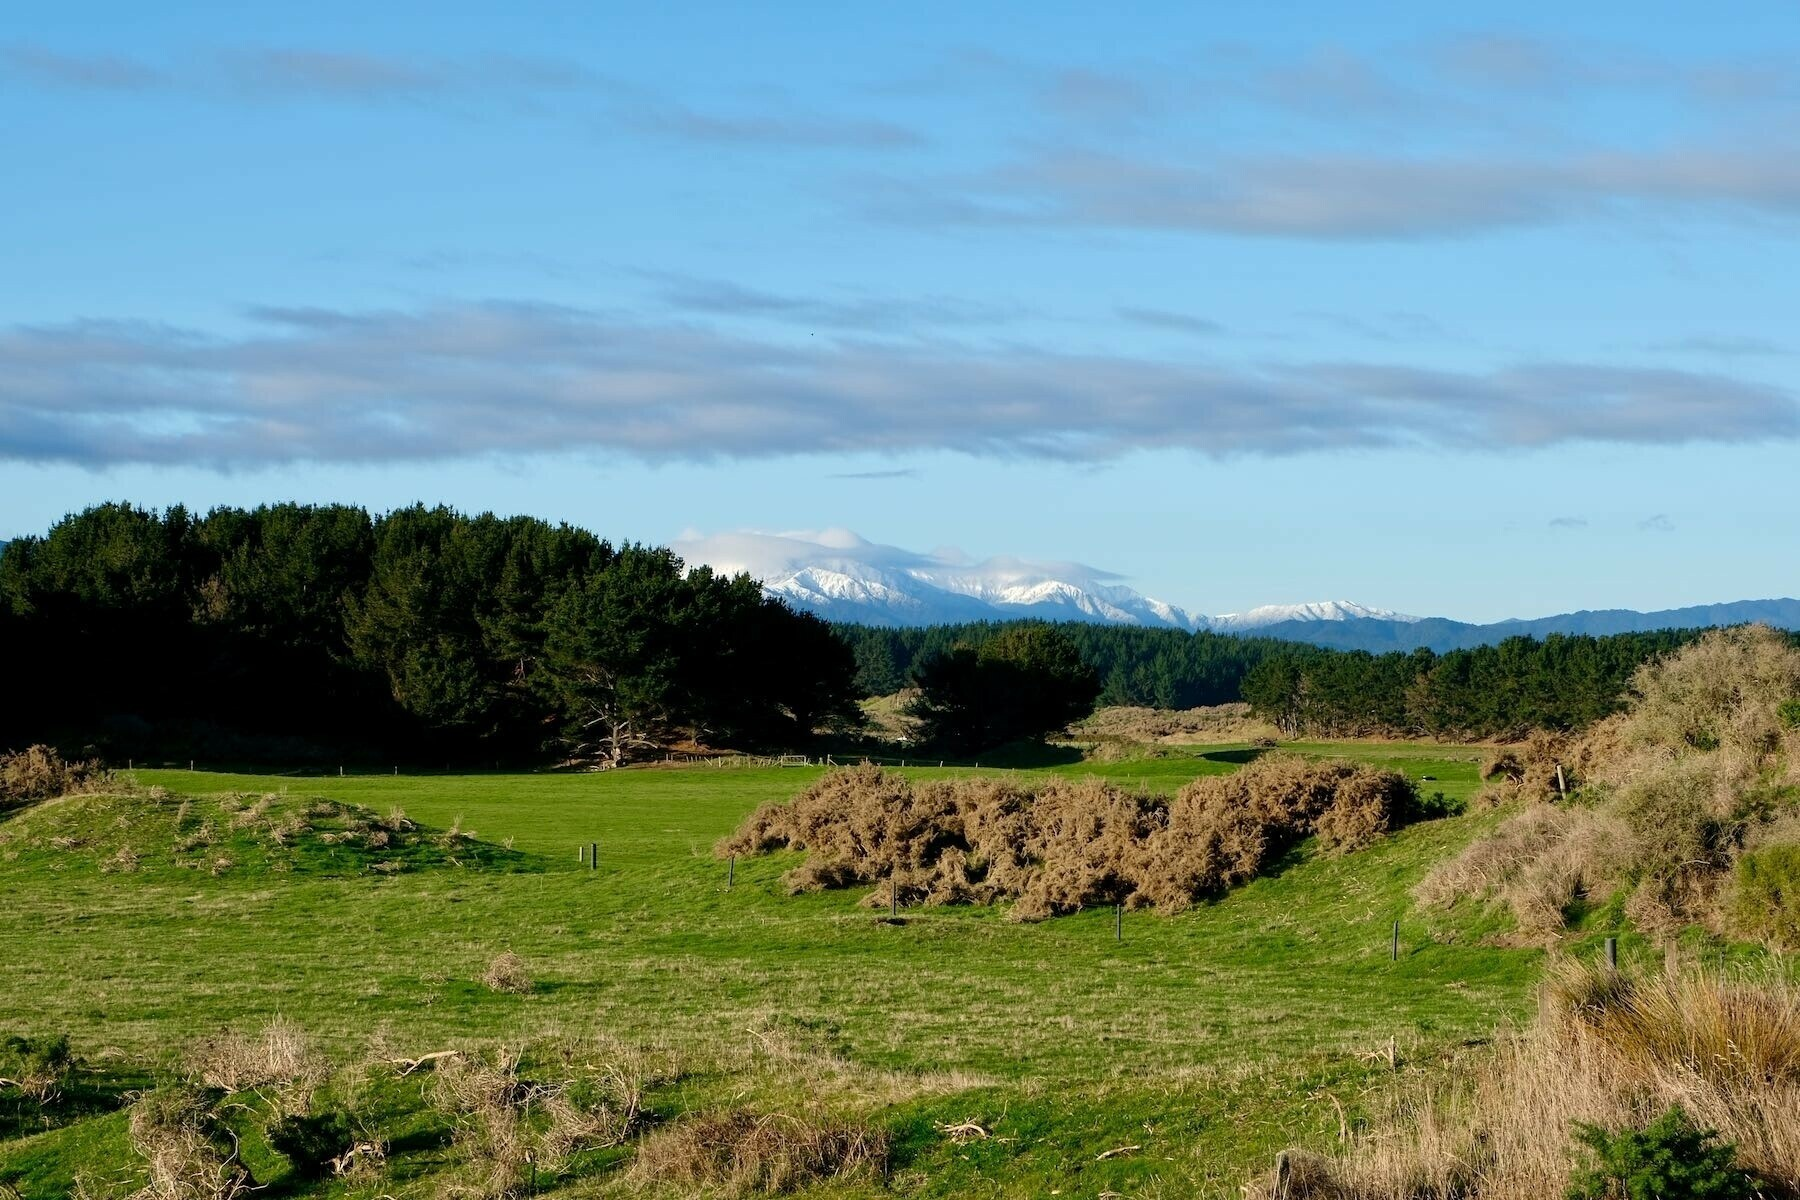 Zoomed in photo of paddocks and a snow-topped hill.